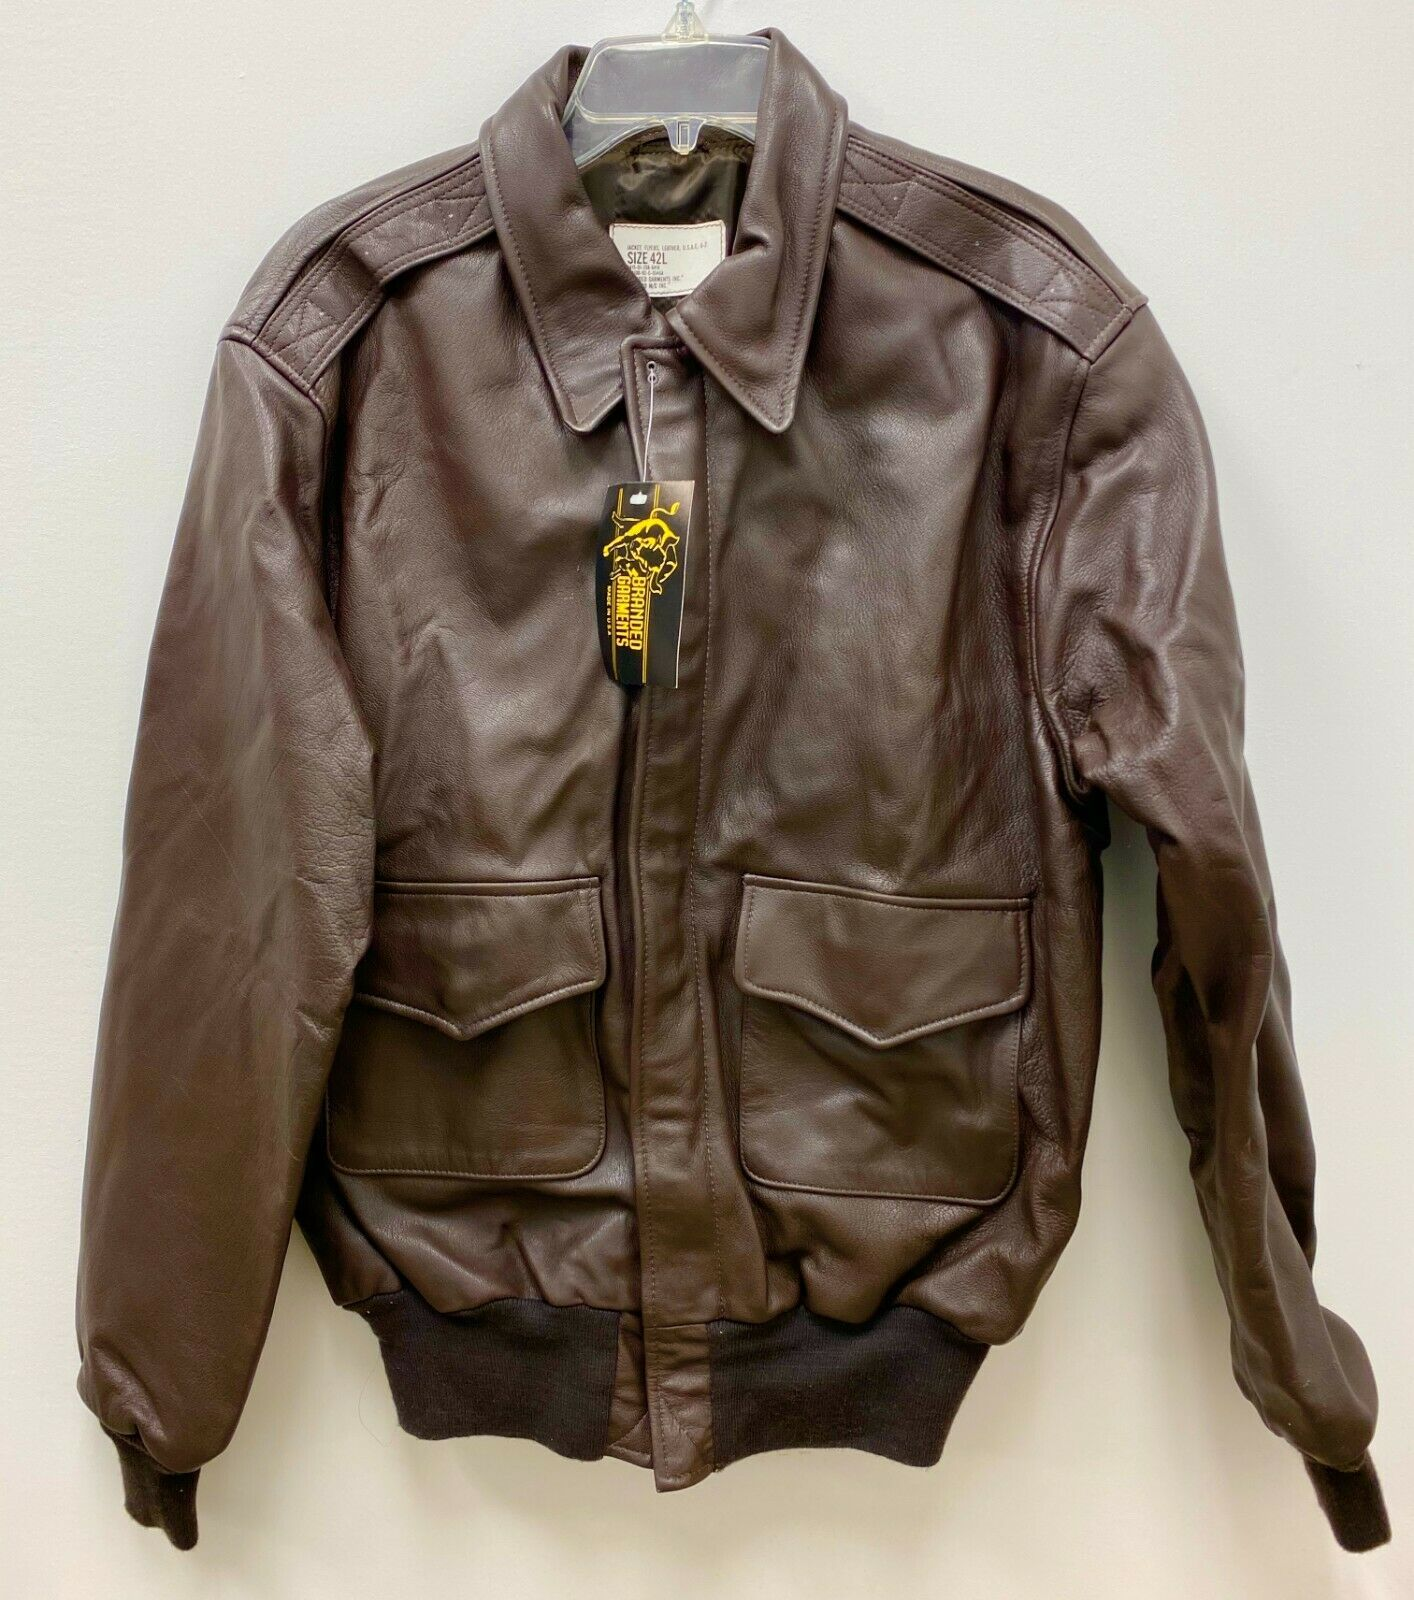 GENUINE 1992 AIR FORCE USFA FLYERS MEN'S LEATHER TYPE A-2 FLIGHT JACKET - 42L - $405.90